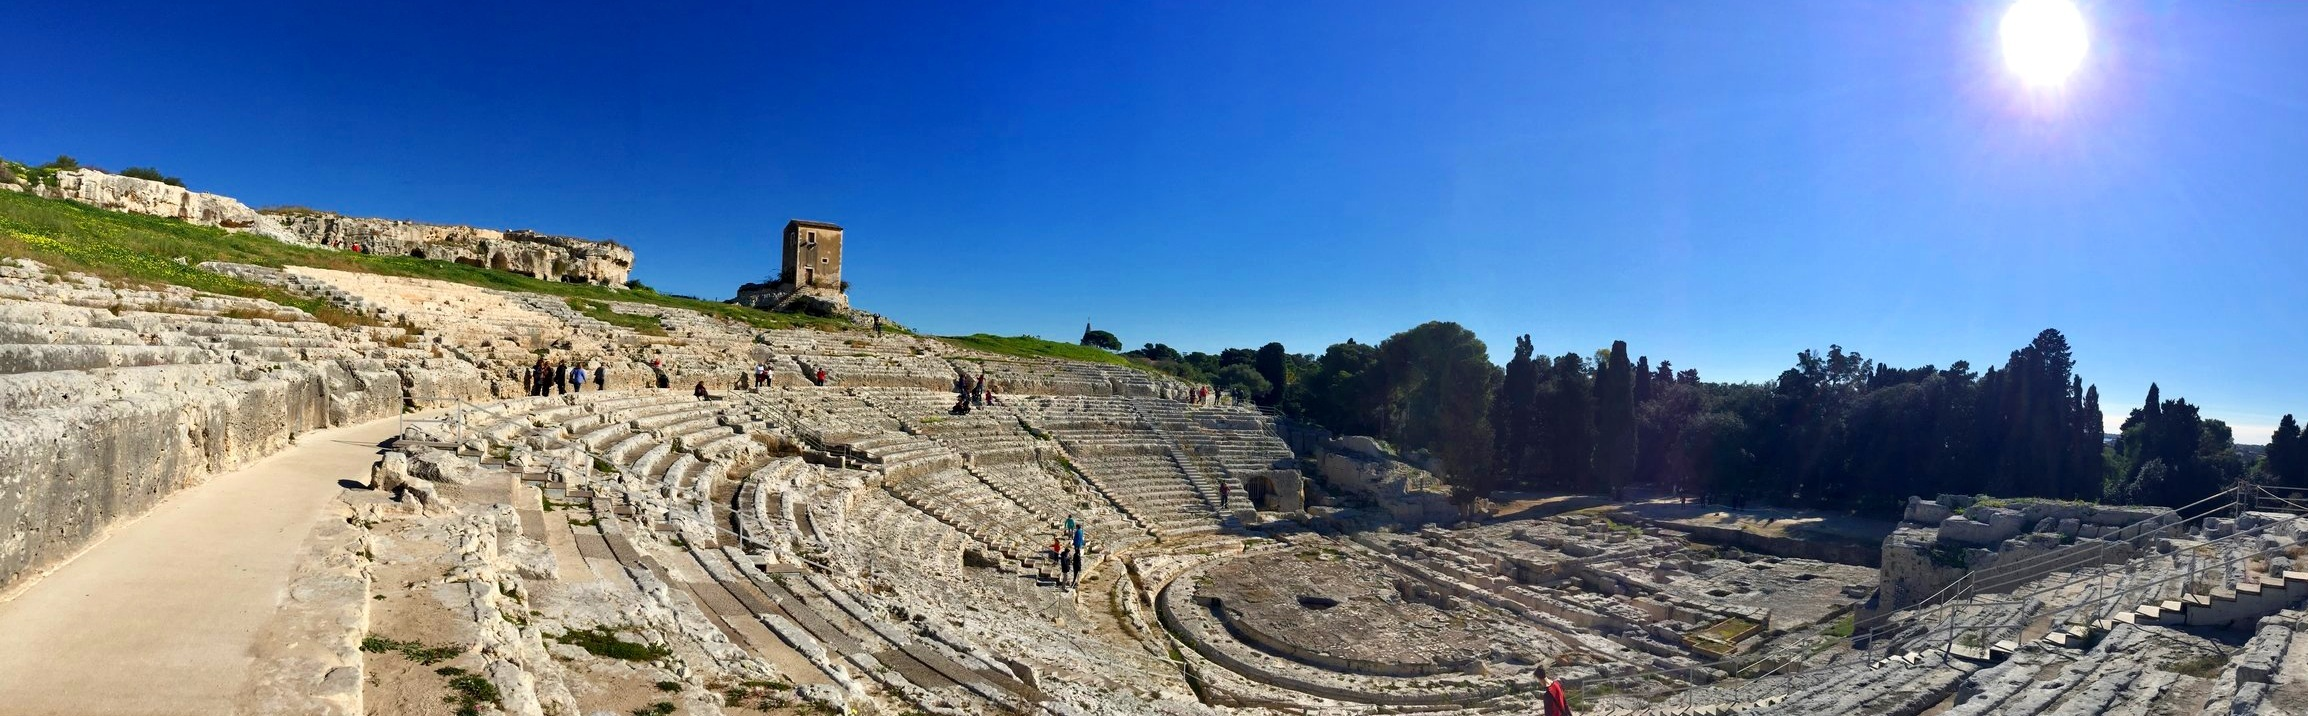 The Greek theatre of Syracuse, built in the 5th century BC and renovated in the Roman period - Unesco World Heritage Site of Syracuse